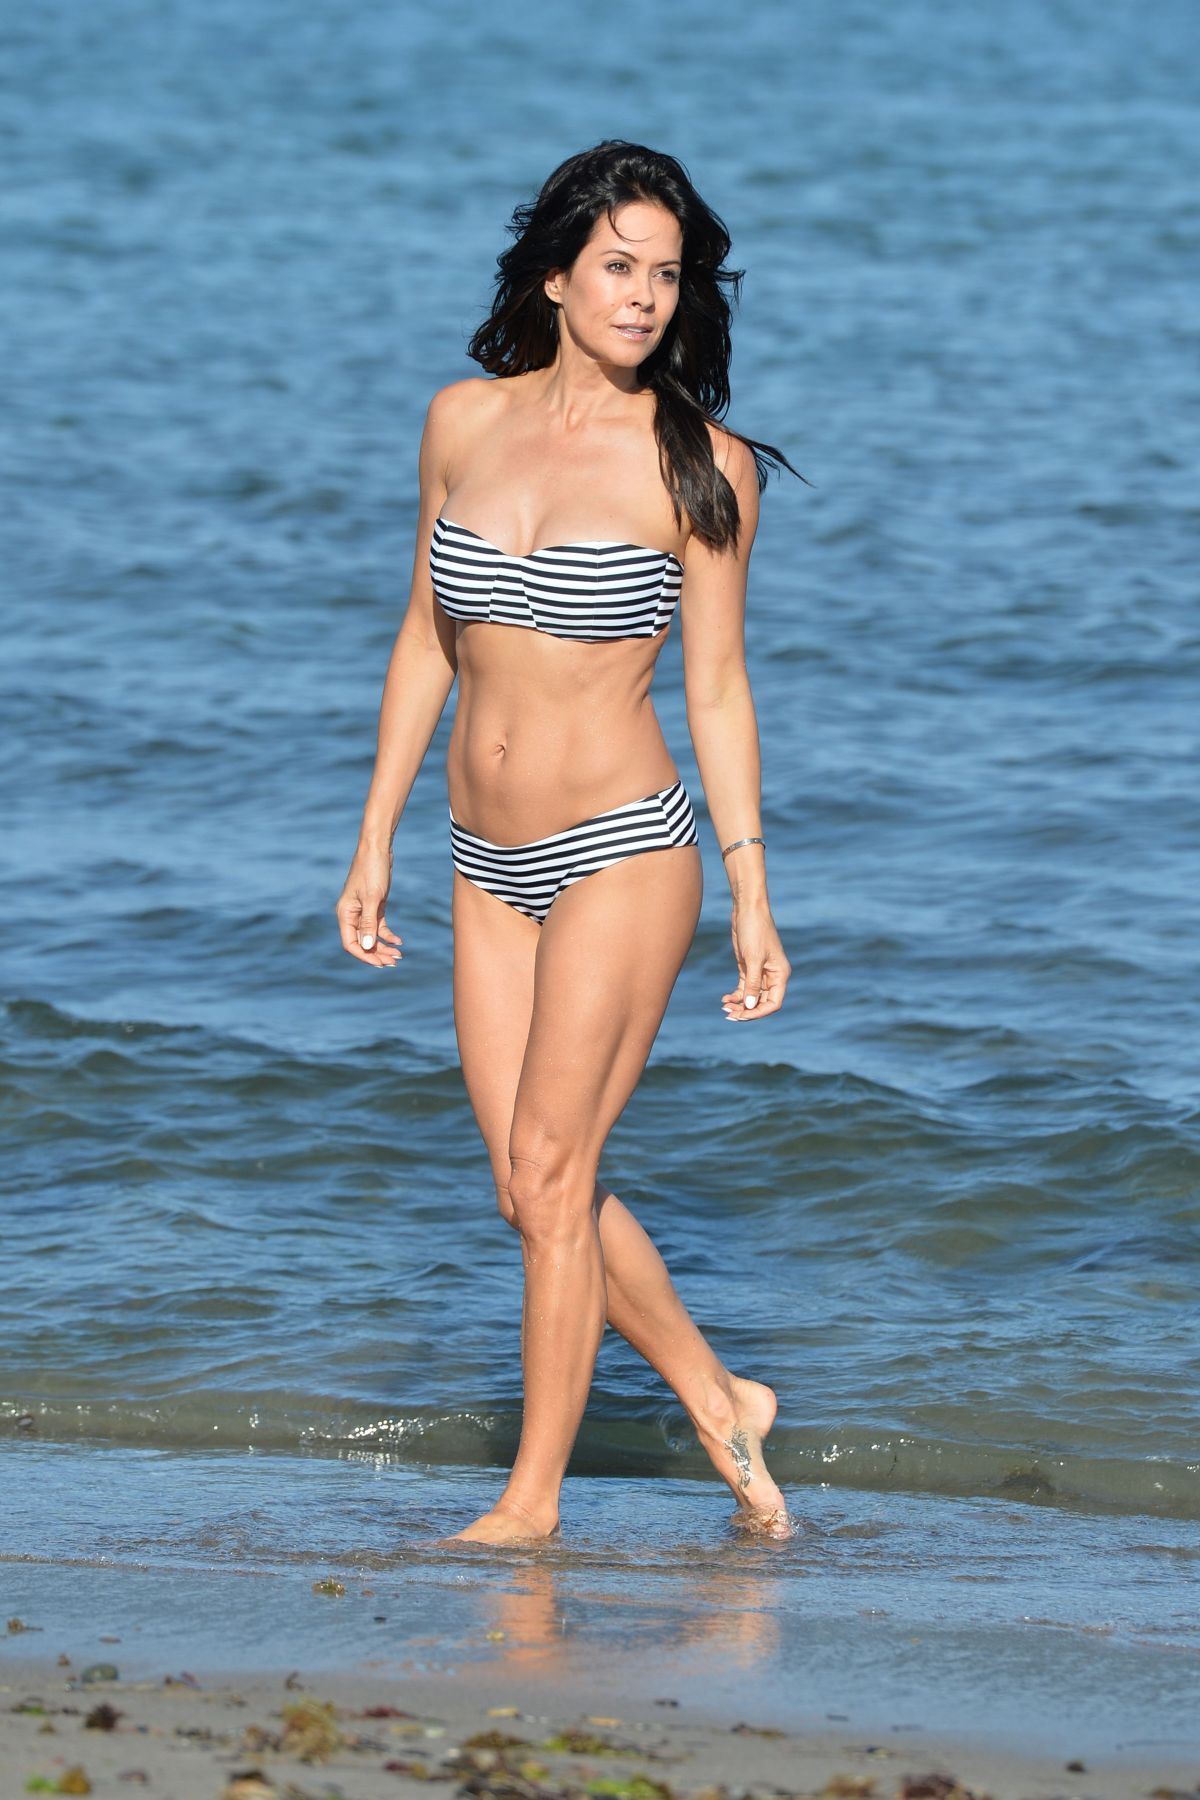 Bikini Brooke Burke nudes (12 foto and video), Topless, Is a cute, Feet, underwear 2018